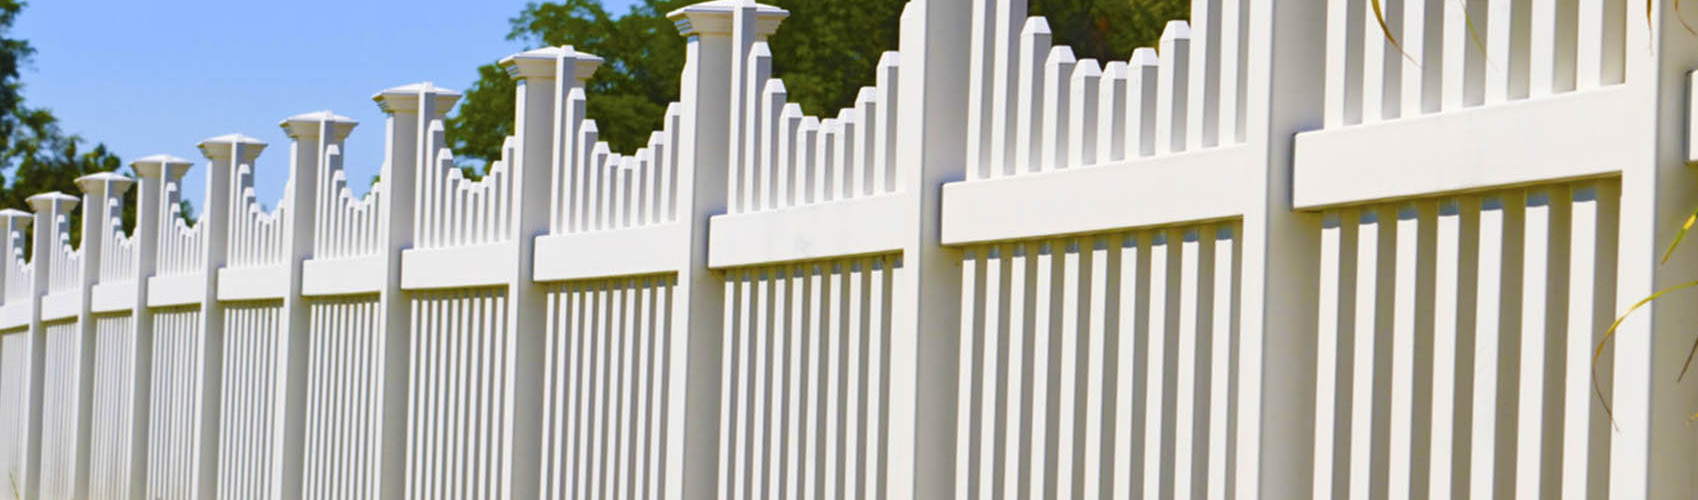 Image Result For Tulsa Fence Companies